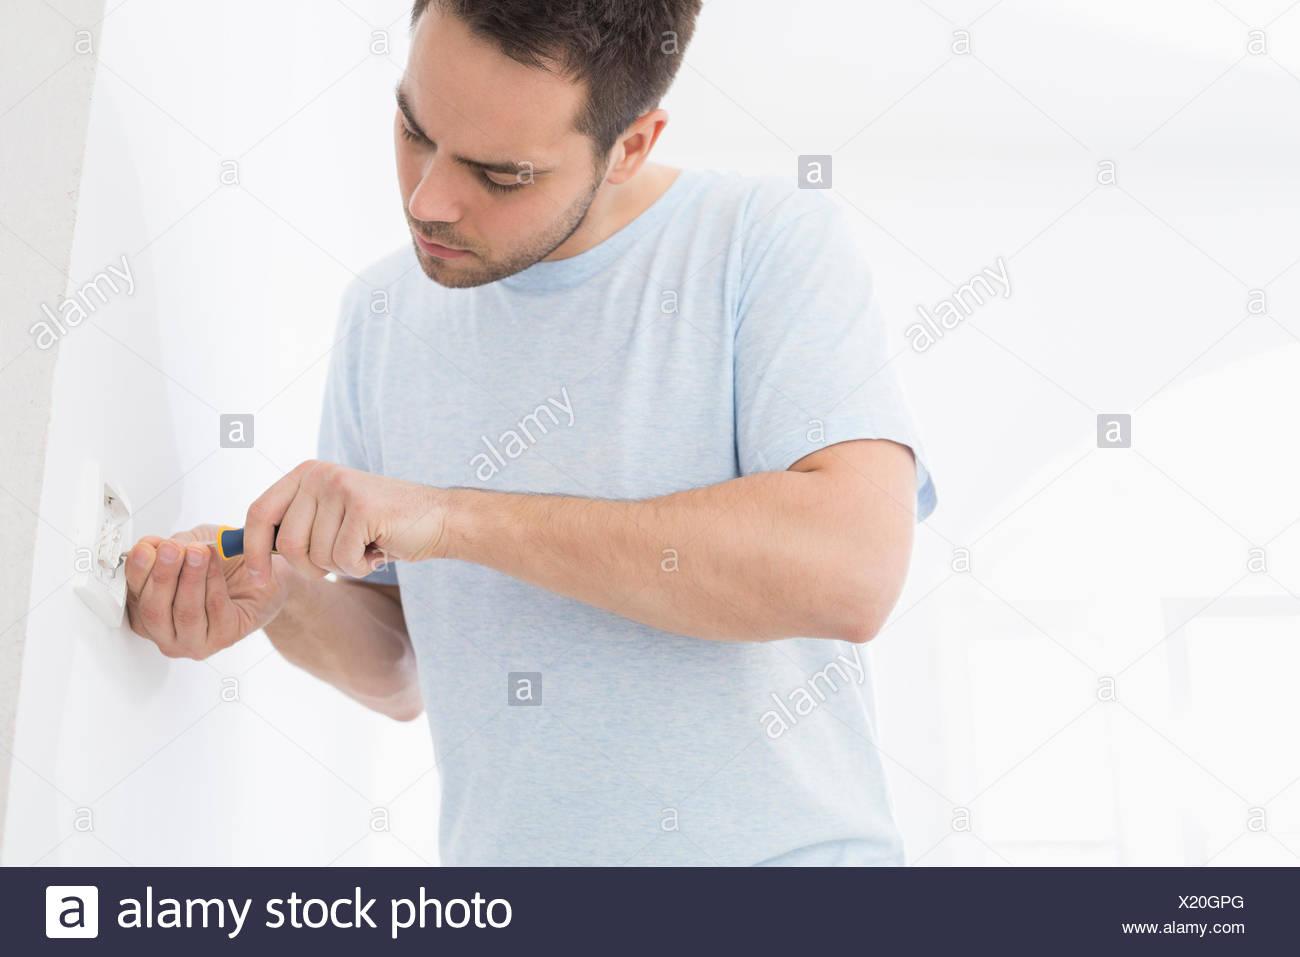 Man working on electrical outlet - Stock Image